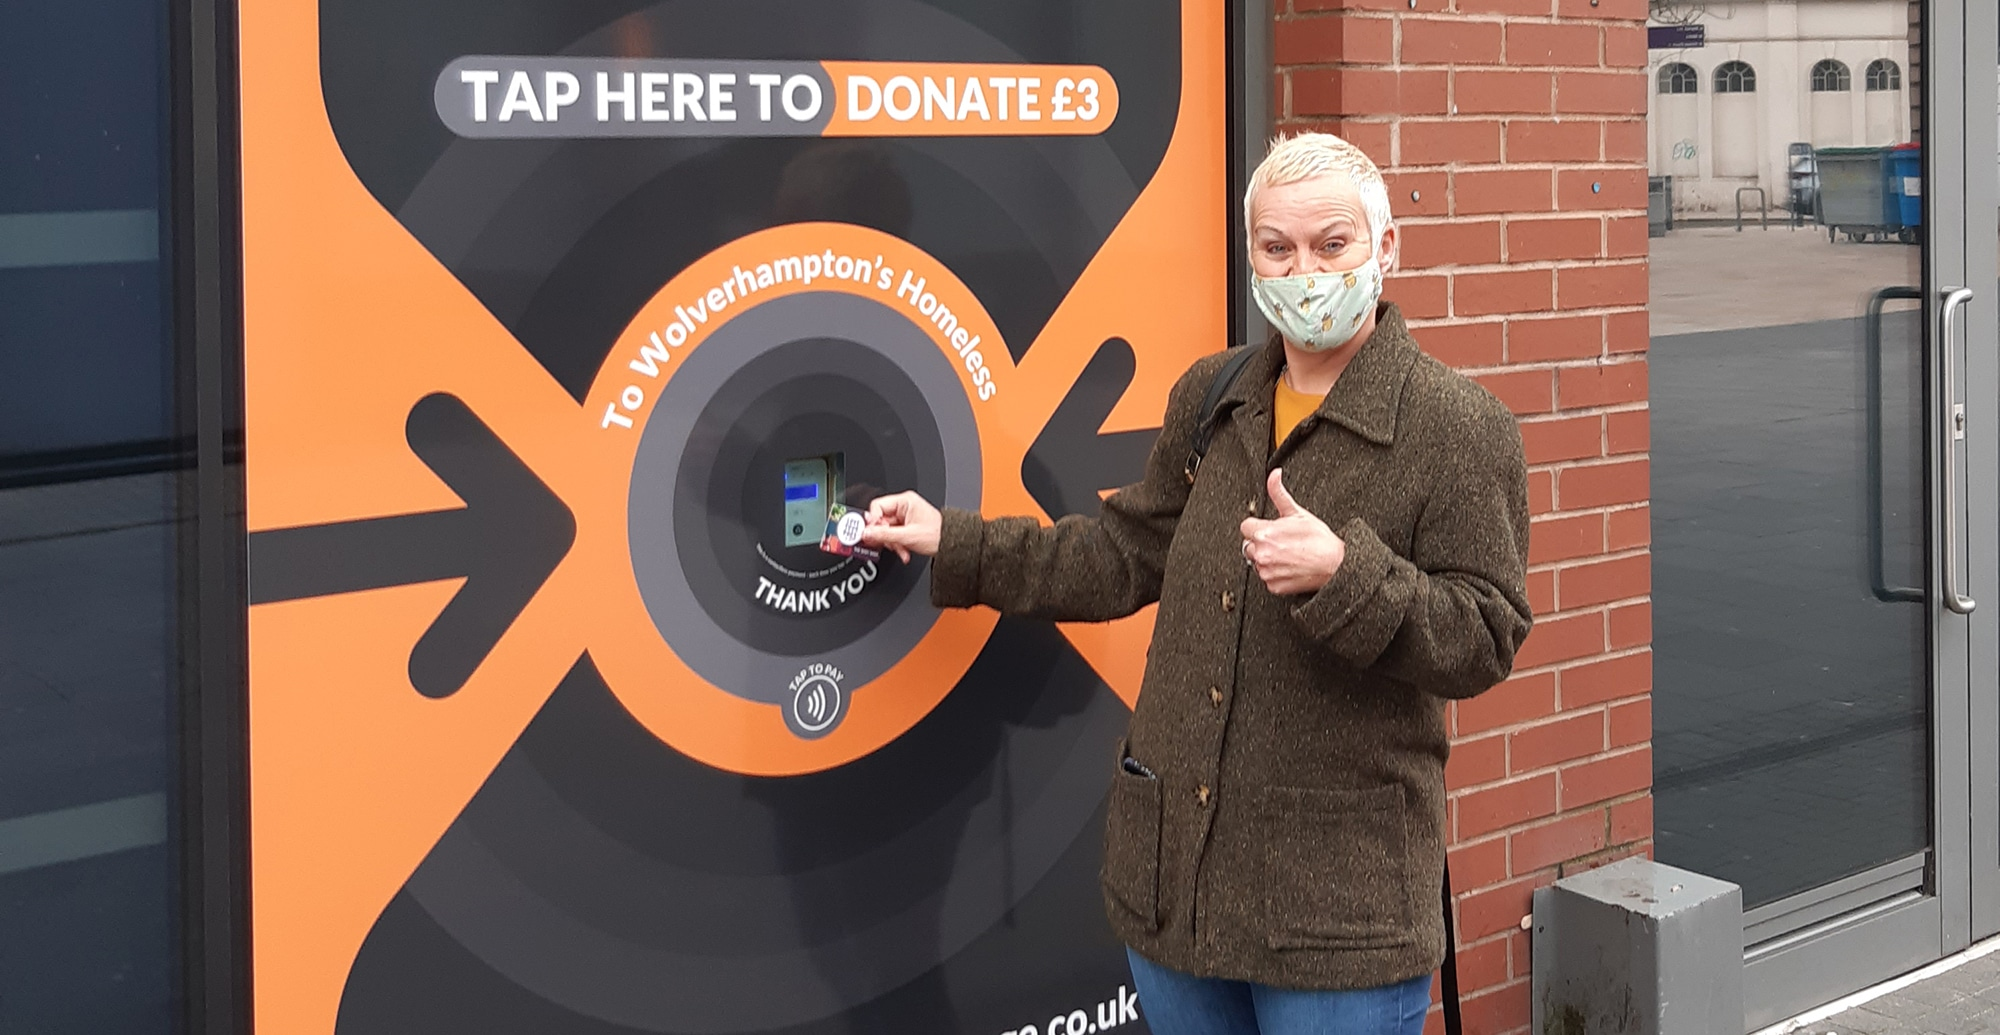 Tap to Donate Point Launched to Support Wolverhampton Homeless and Vulnerable